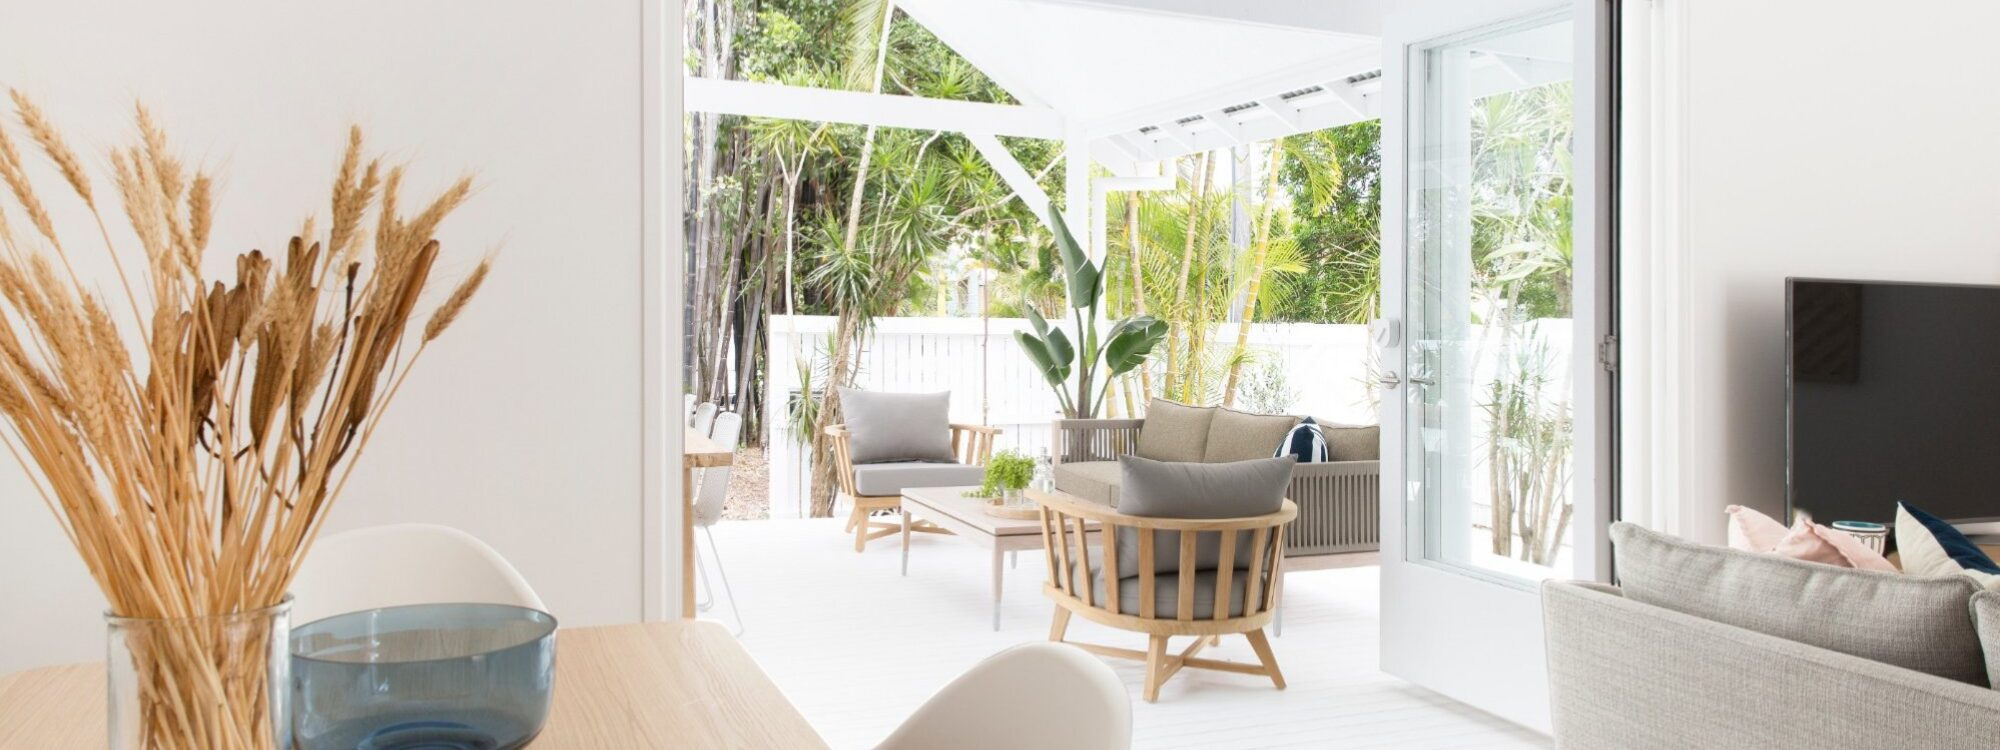 Barrel and Branch - Byron Bay - lounge room looking out towards deck